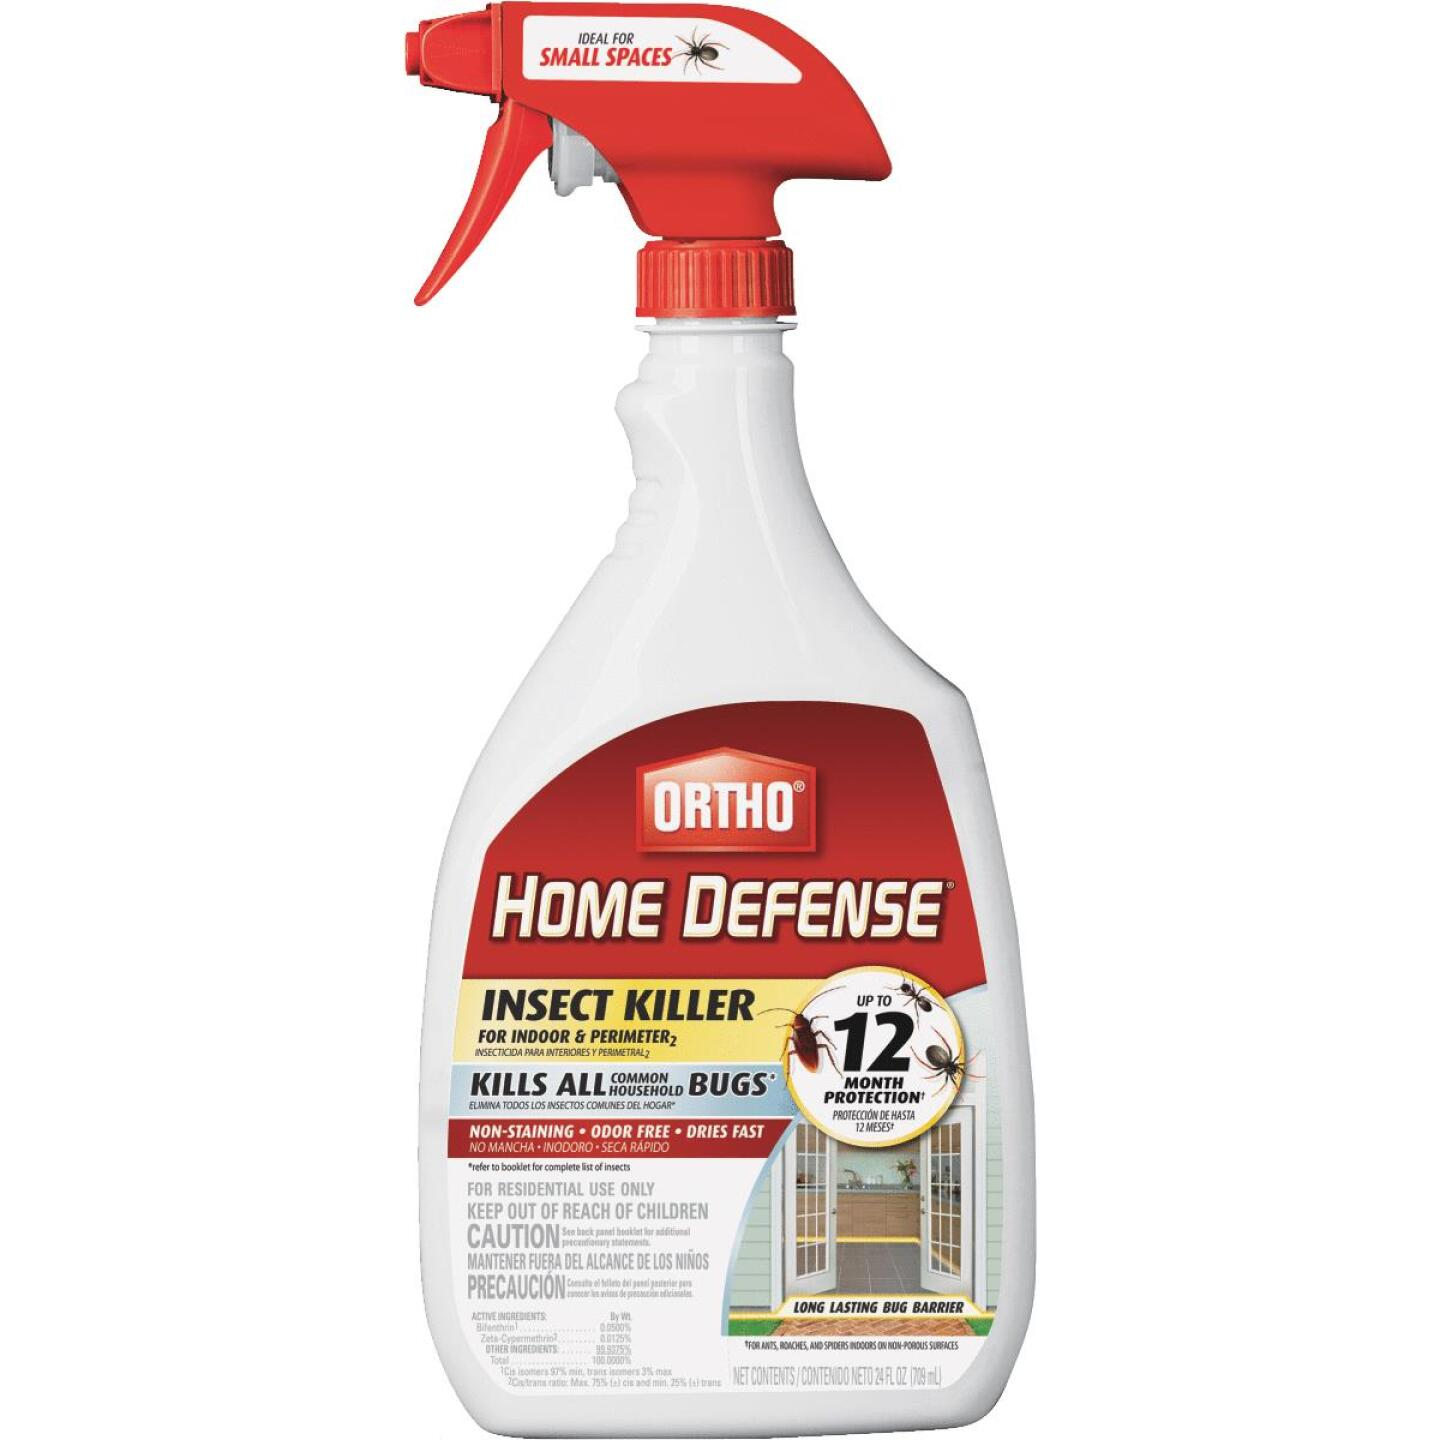 Ortho Home Defense 24 Oz. Ready To Use Trigger Spray Insect Killer Image 1